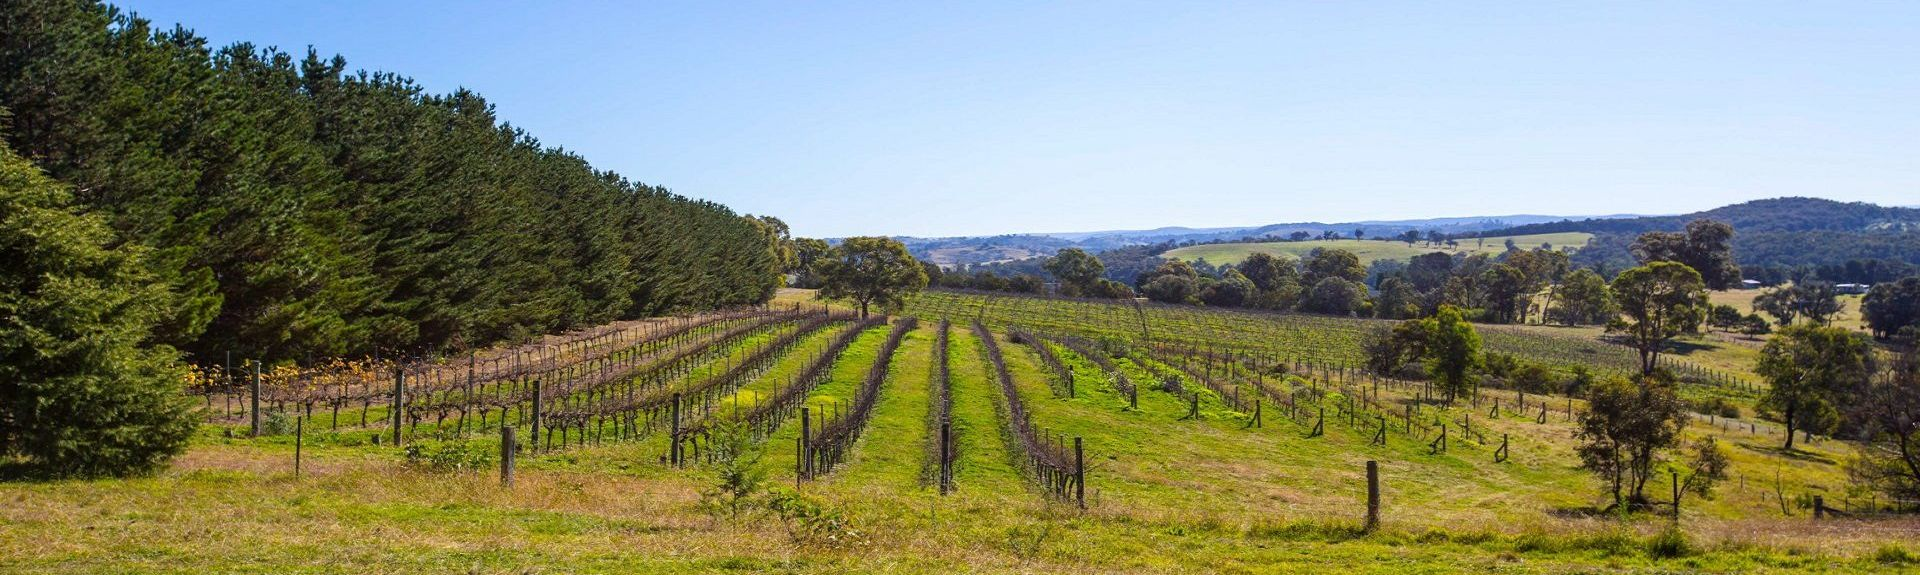 Centennial Vineyards, Bowral, New South Wales, Australia